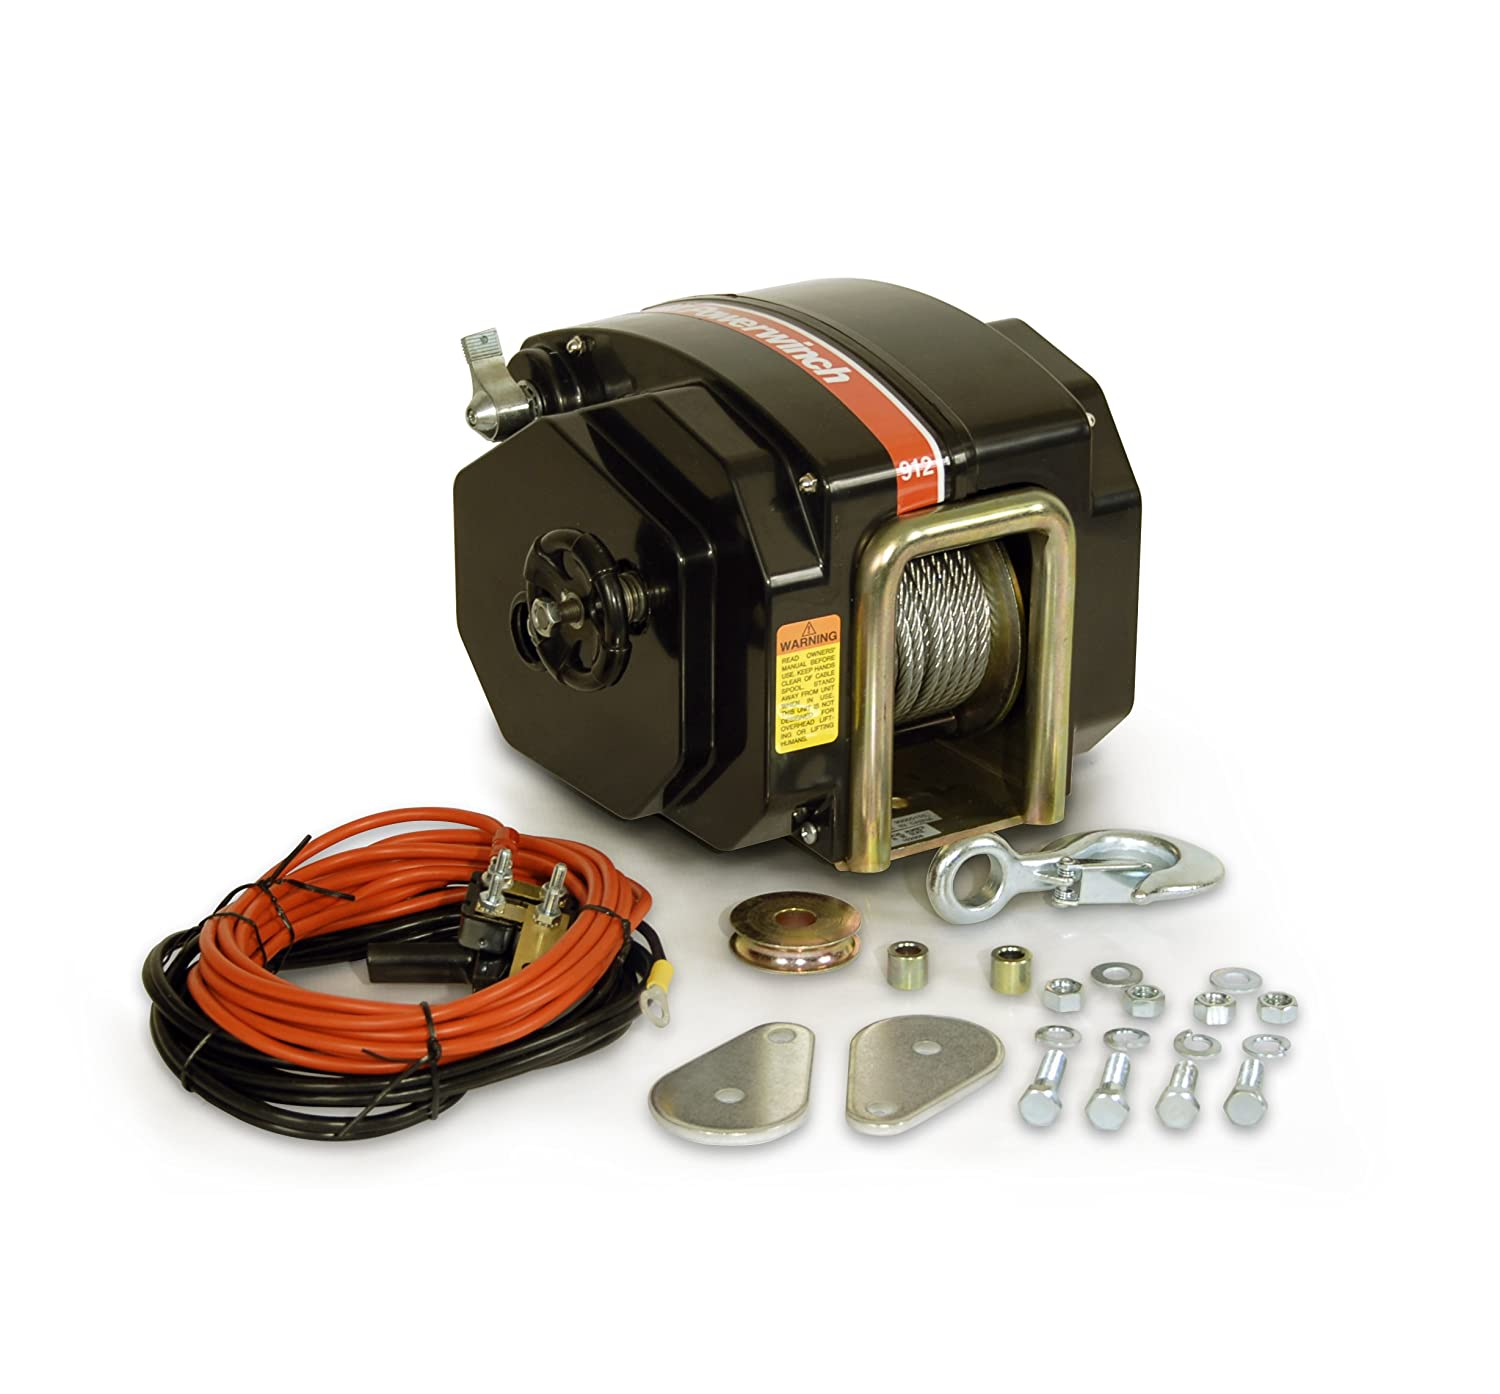 "Amazon.com : Powerwinch 912 Trailer Winch (40' x 7/32"" cable) : Boat  Trailer Winches And Accessories : Sports & Outdoors"